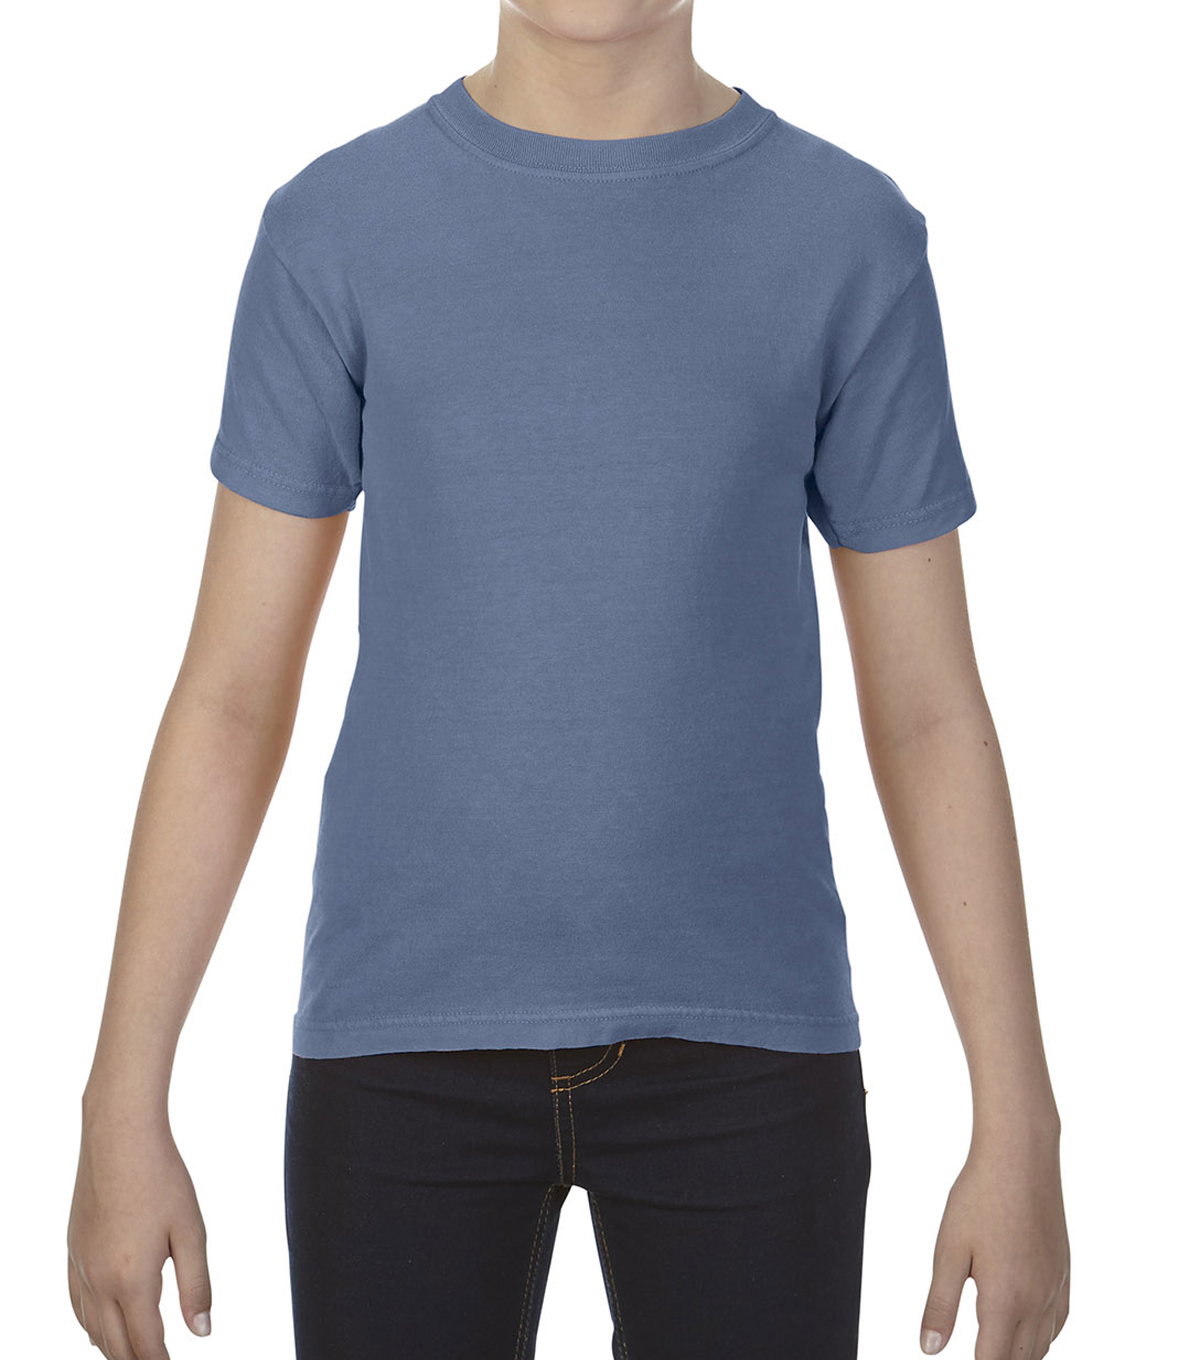 Gildan Comfort Colors 9018 Medium Youth T-Shirt